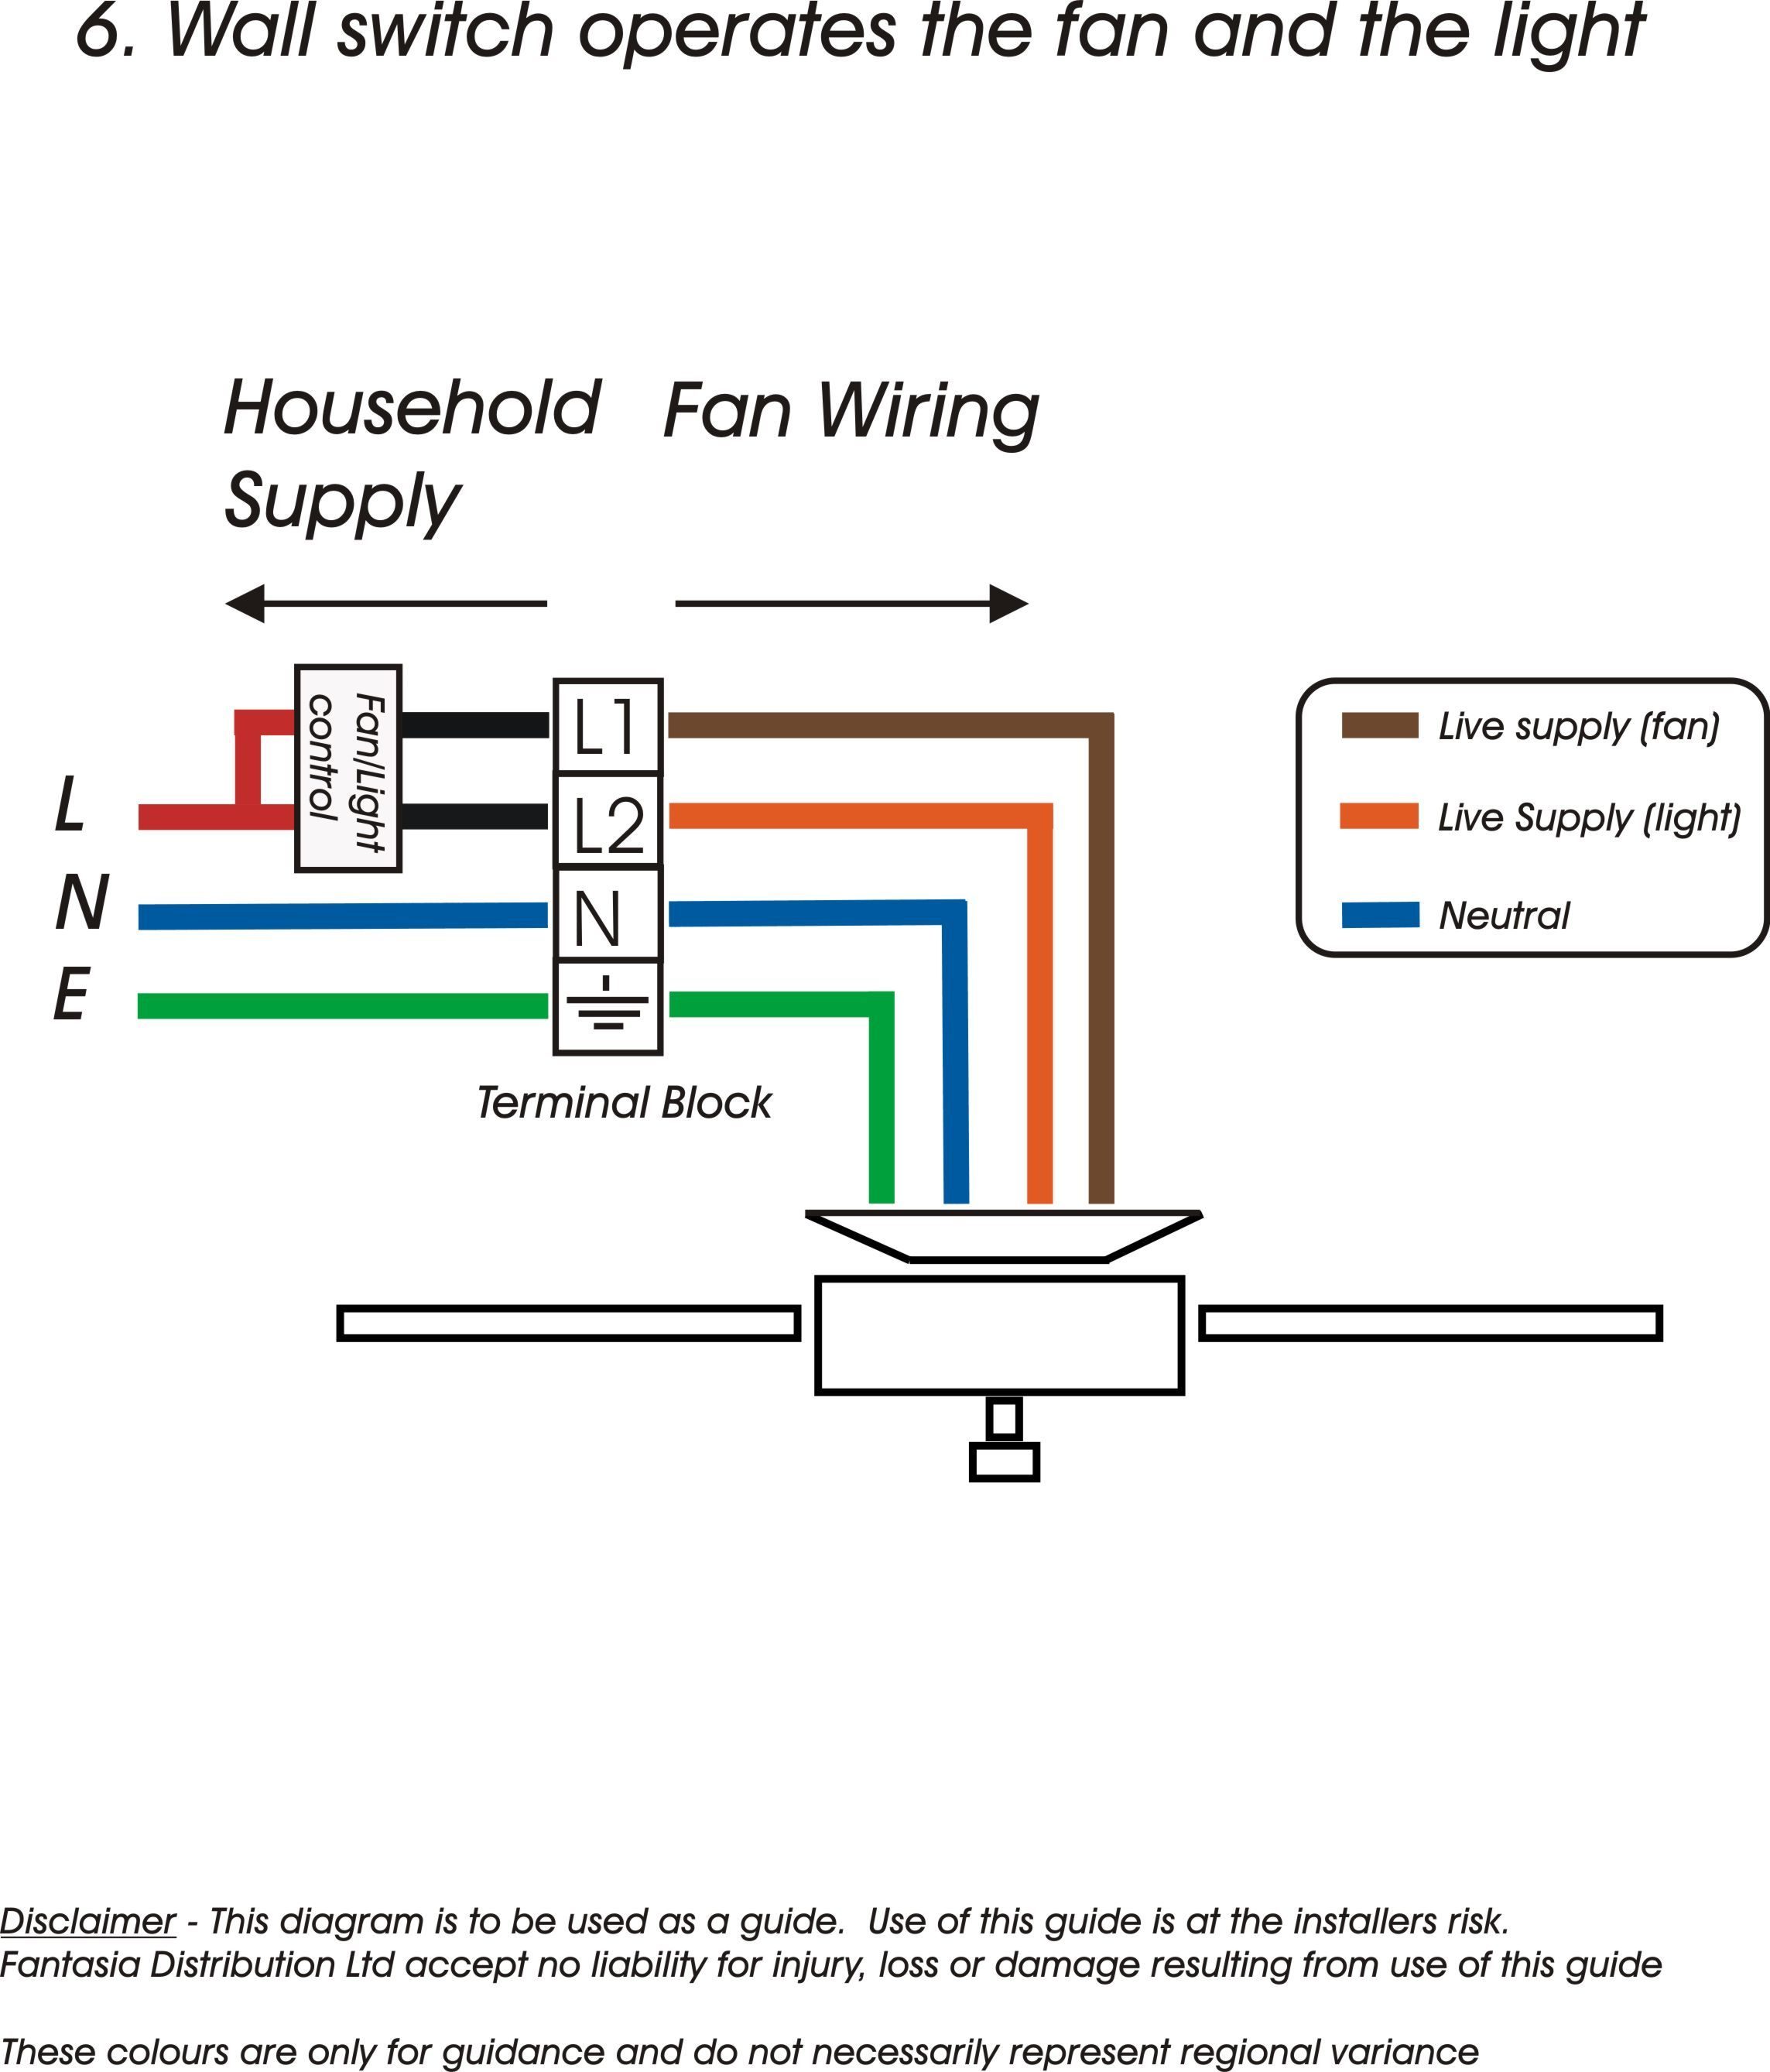 dual fan wiring diagram wiring diagram for ceiling fan with light and remote ceiling fan dual cooling fan wiring diagram wiring diagram for ceiling fan with